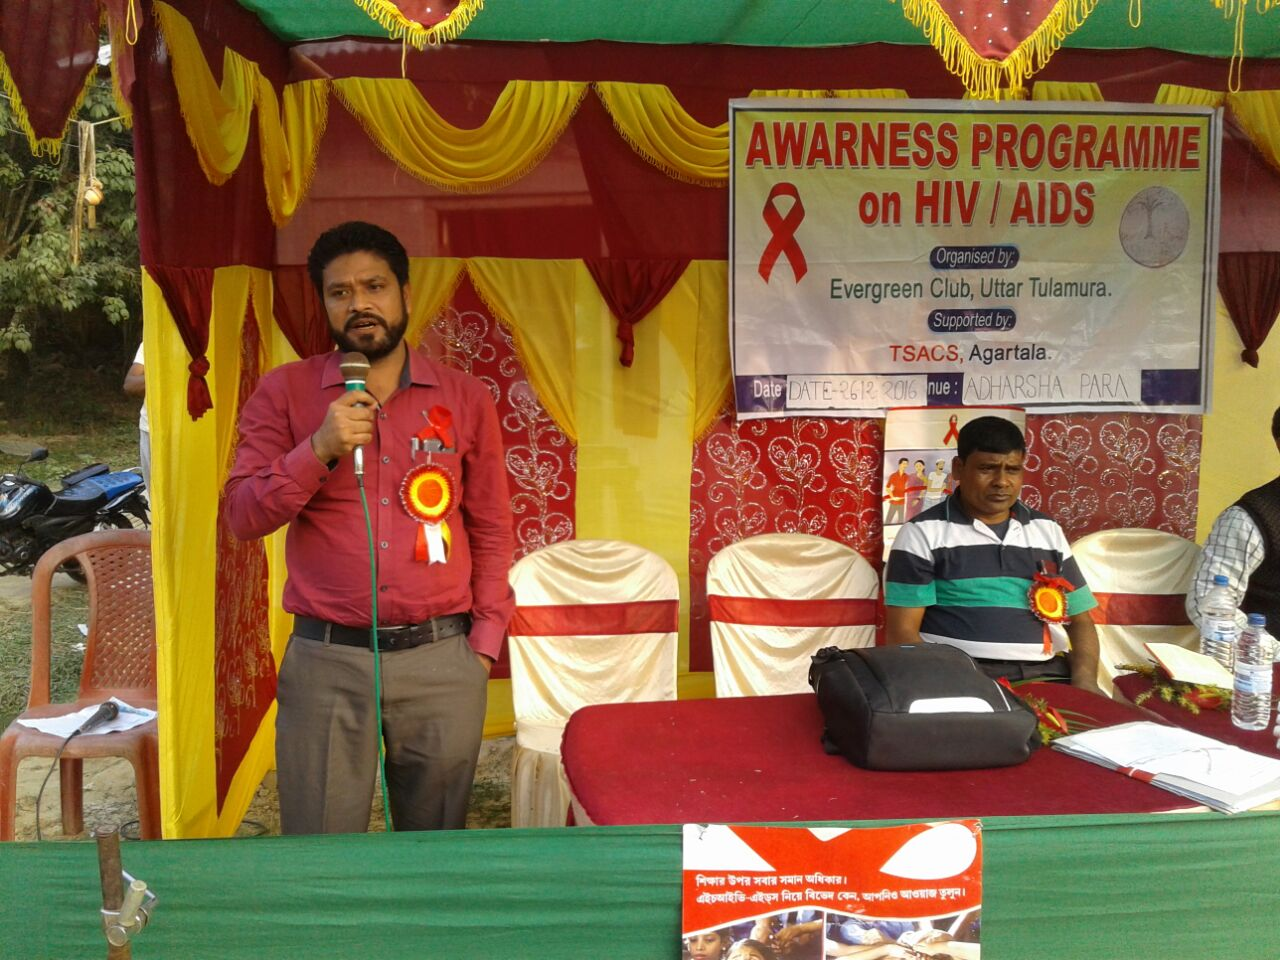 Jiaul-Islam-AIDS-Workshop.jpg